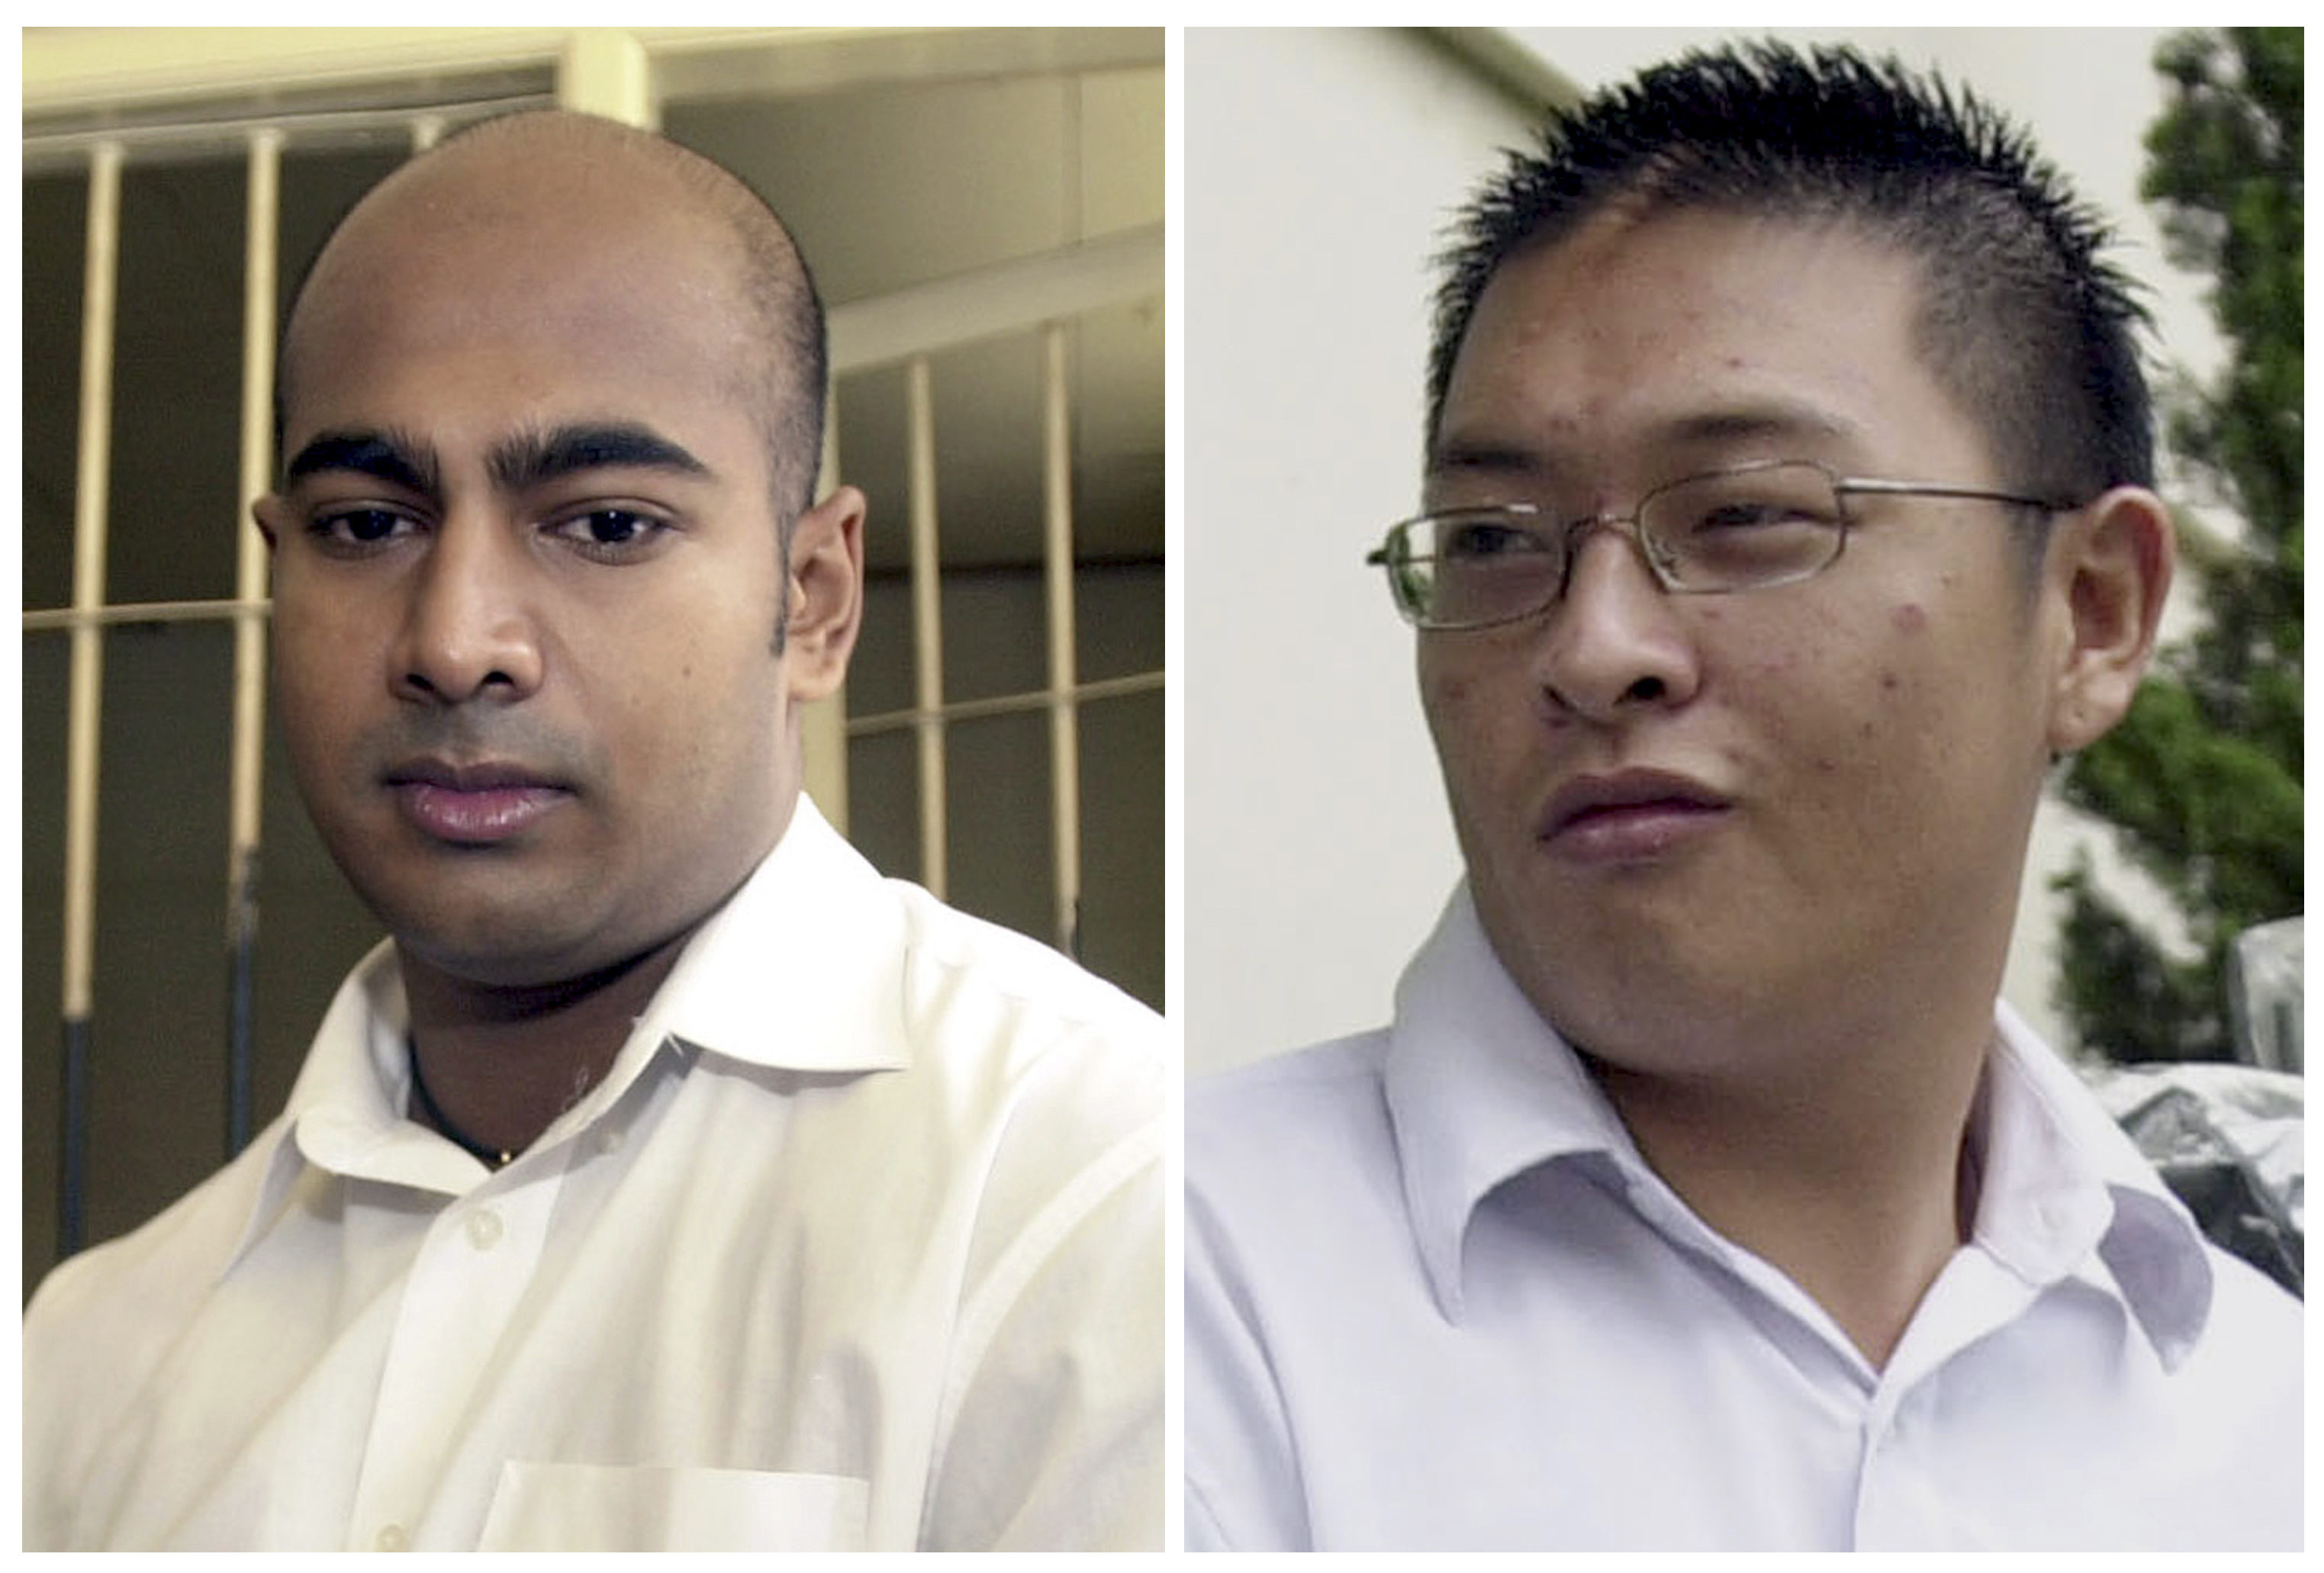 Convicted drug traffickers Myuran Sukumaran (left) and Andrew Chan, both Australians, are among several foreigners facing execution in Indonesia despite international appeals for clemency. | AP